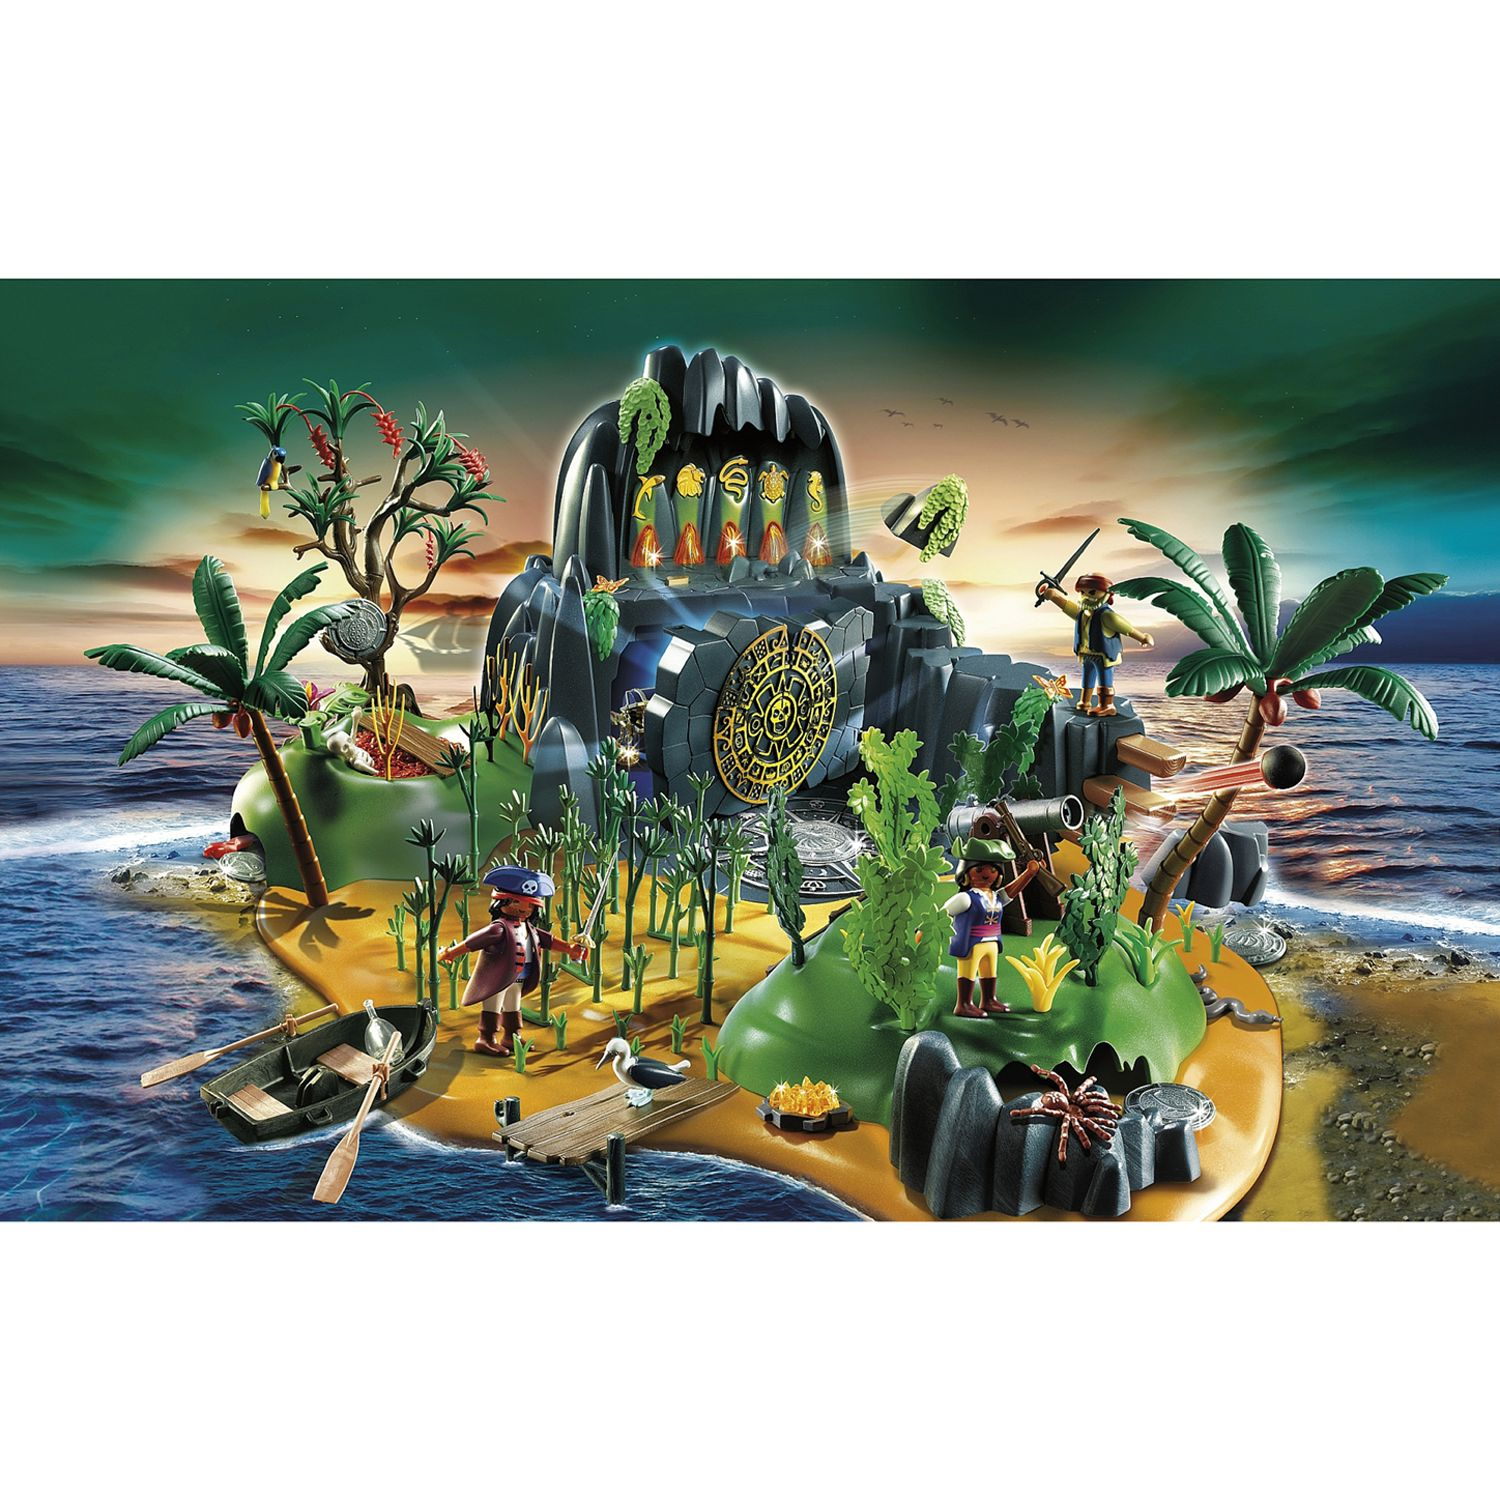 Playmobil Pirates Pirate Adventure Island